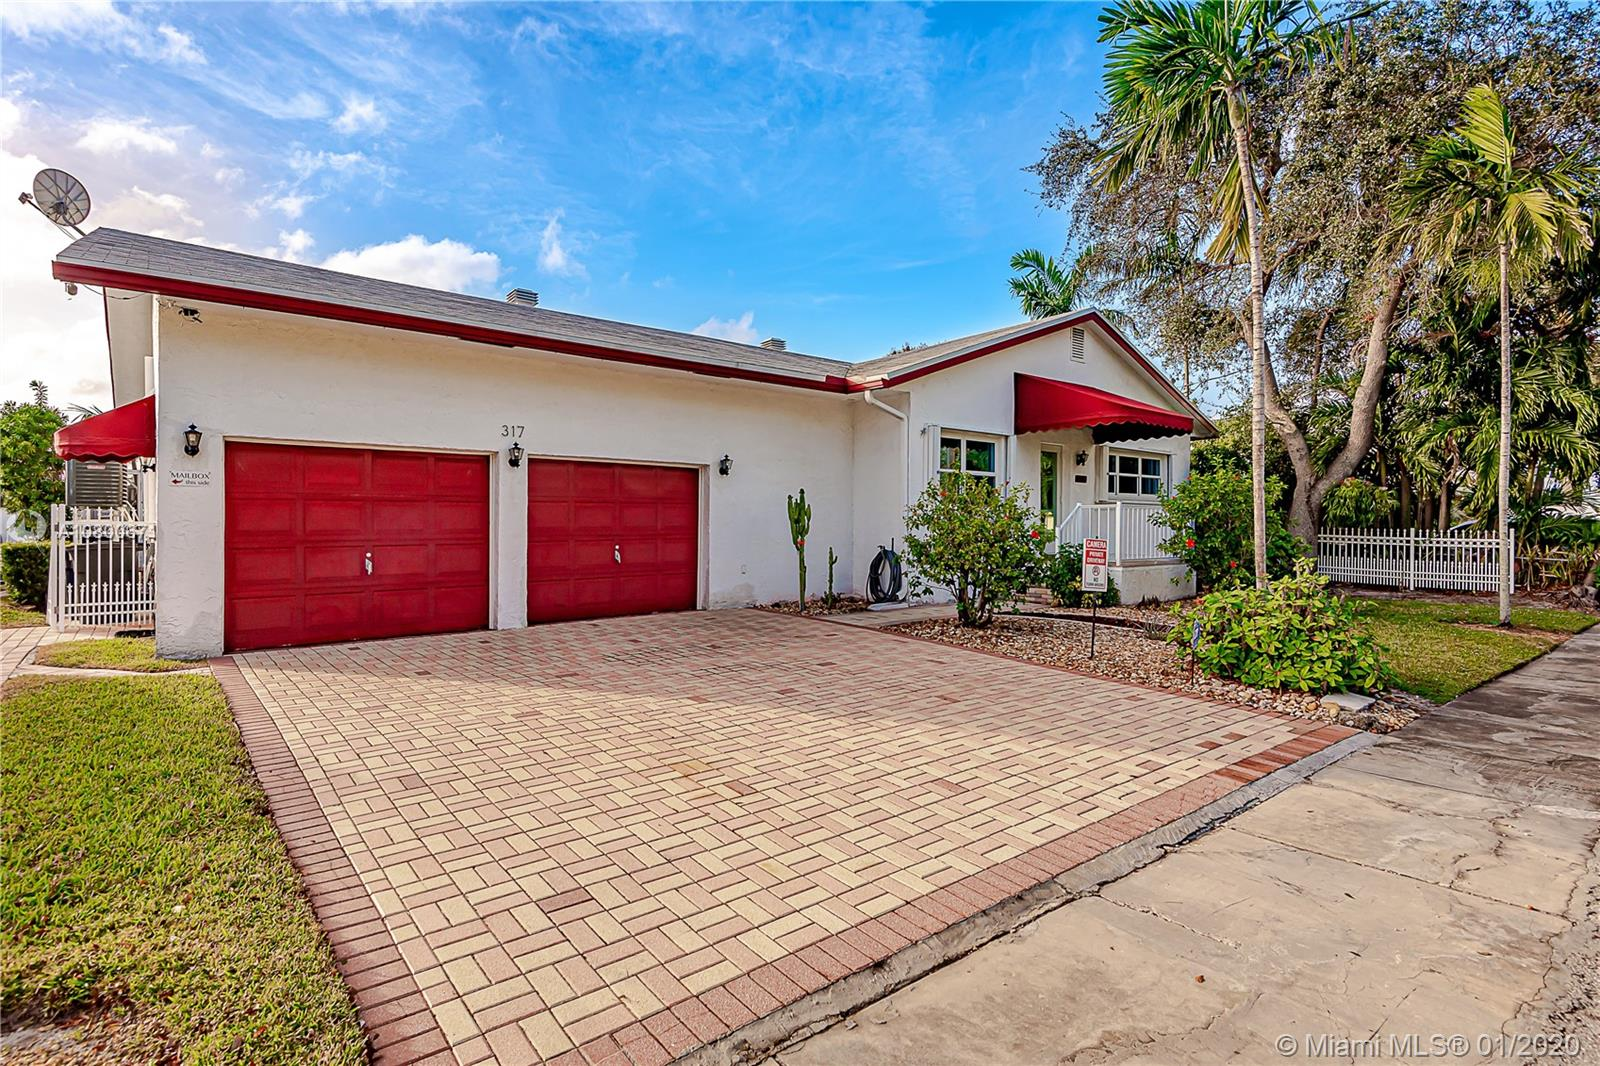 DON'T MISS THIS RARE OPPORTUNITY**EAST OF US 1**MOVE RIGHT IN THIS ABSOLUTE BEAUTY.**SET UP AS A SUPER SPACIOUS 2/2 PLUS FAMILY ROOM ON ONE SIDE AND A FULL 1 BEDROOM IN LAW QUARTER ATTACHED COMPLETE WITH AN 80 FT DOCK** MINUTES FROM FT LAUD AIRPORT AND THE BEACH**NO NEED TO CRUISE YOUR BOAT AN HOUR TO REACH THE OCEAN AS THIS ONE IS JUST MINUTES FROM THE INTRACOASTAL WATERWAYS AND NO FIX  BRIDGES ON TOP OF THAT**SUPER SPACIOUS 3000 S.F.PRICED RIGHT**LOOKS RIGHT**SEPERATE MOTHER-LAW-QUARTERS**2 CARS GARAGE**80 FT WATERFRONT AND DOCK SPACE THAT COULD BE USED AS EXTRA INCOME**HEATED POOL W BUILT-IN SPA**NEW HURRICANE WINDOWS, 2 CAR GARAGE, **TOTALLY REMODELED AND SO MUCH MORE...